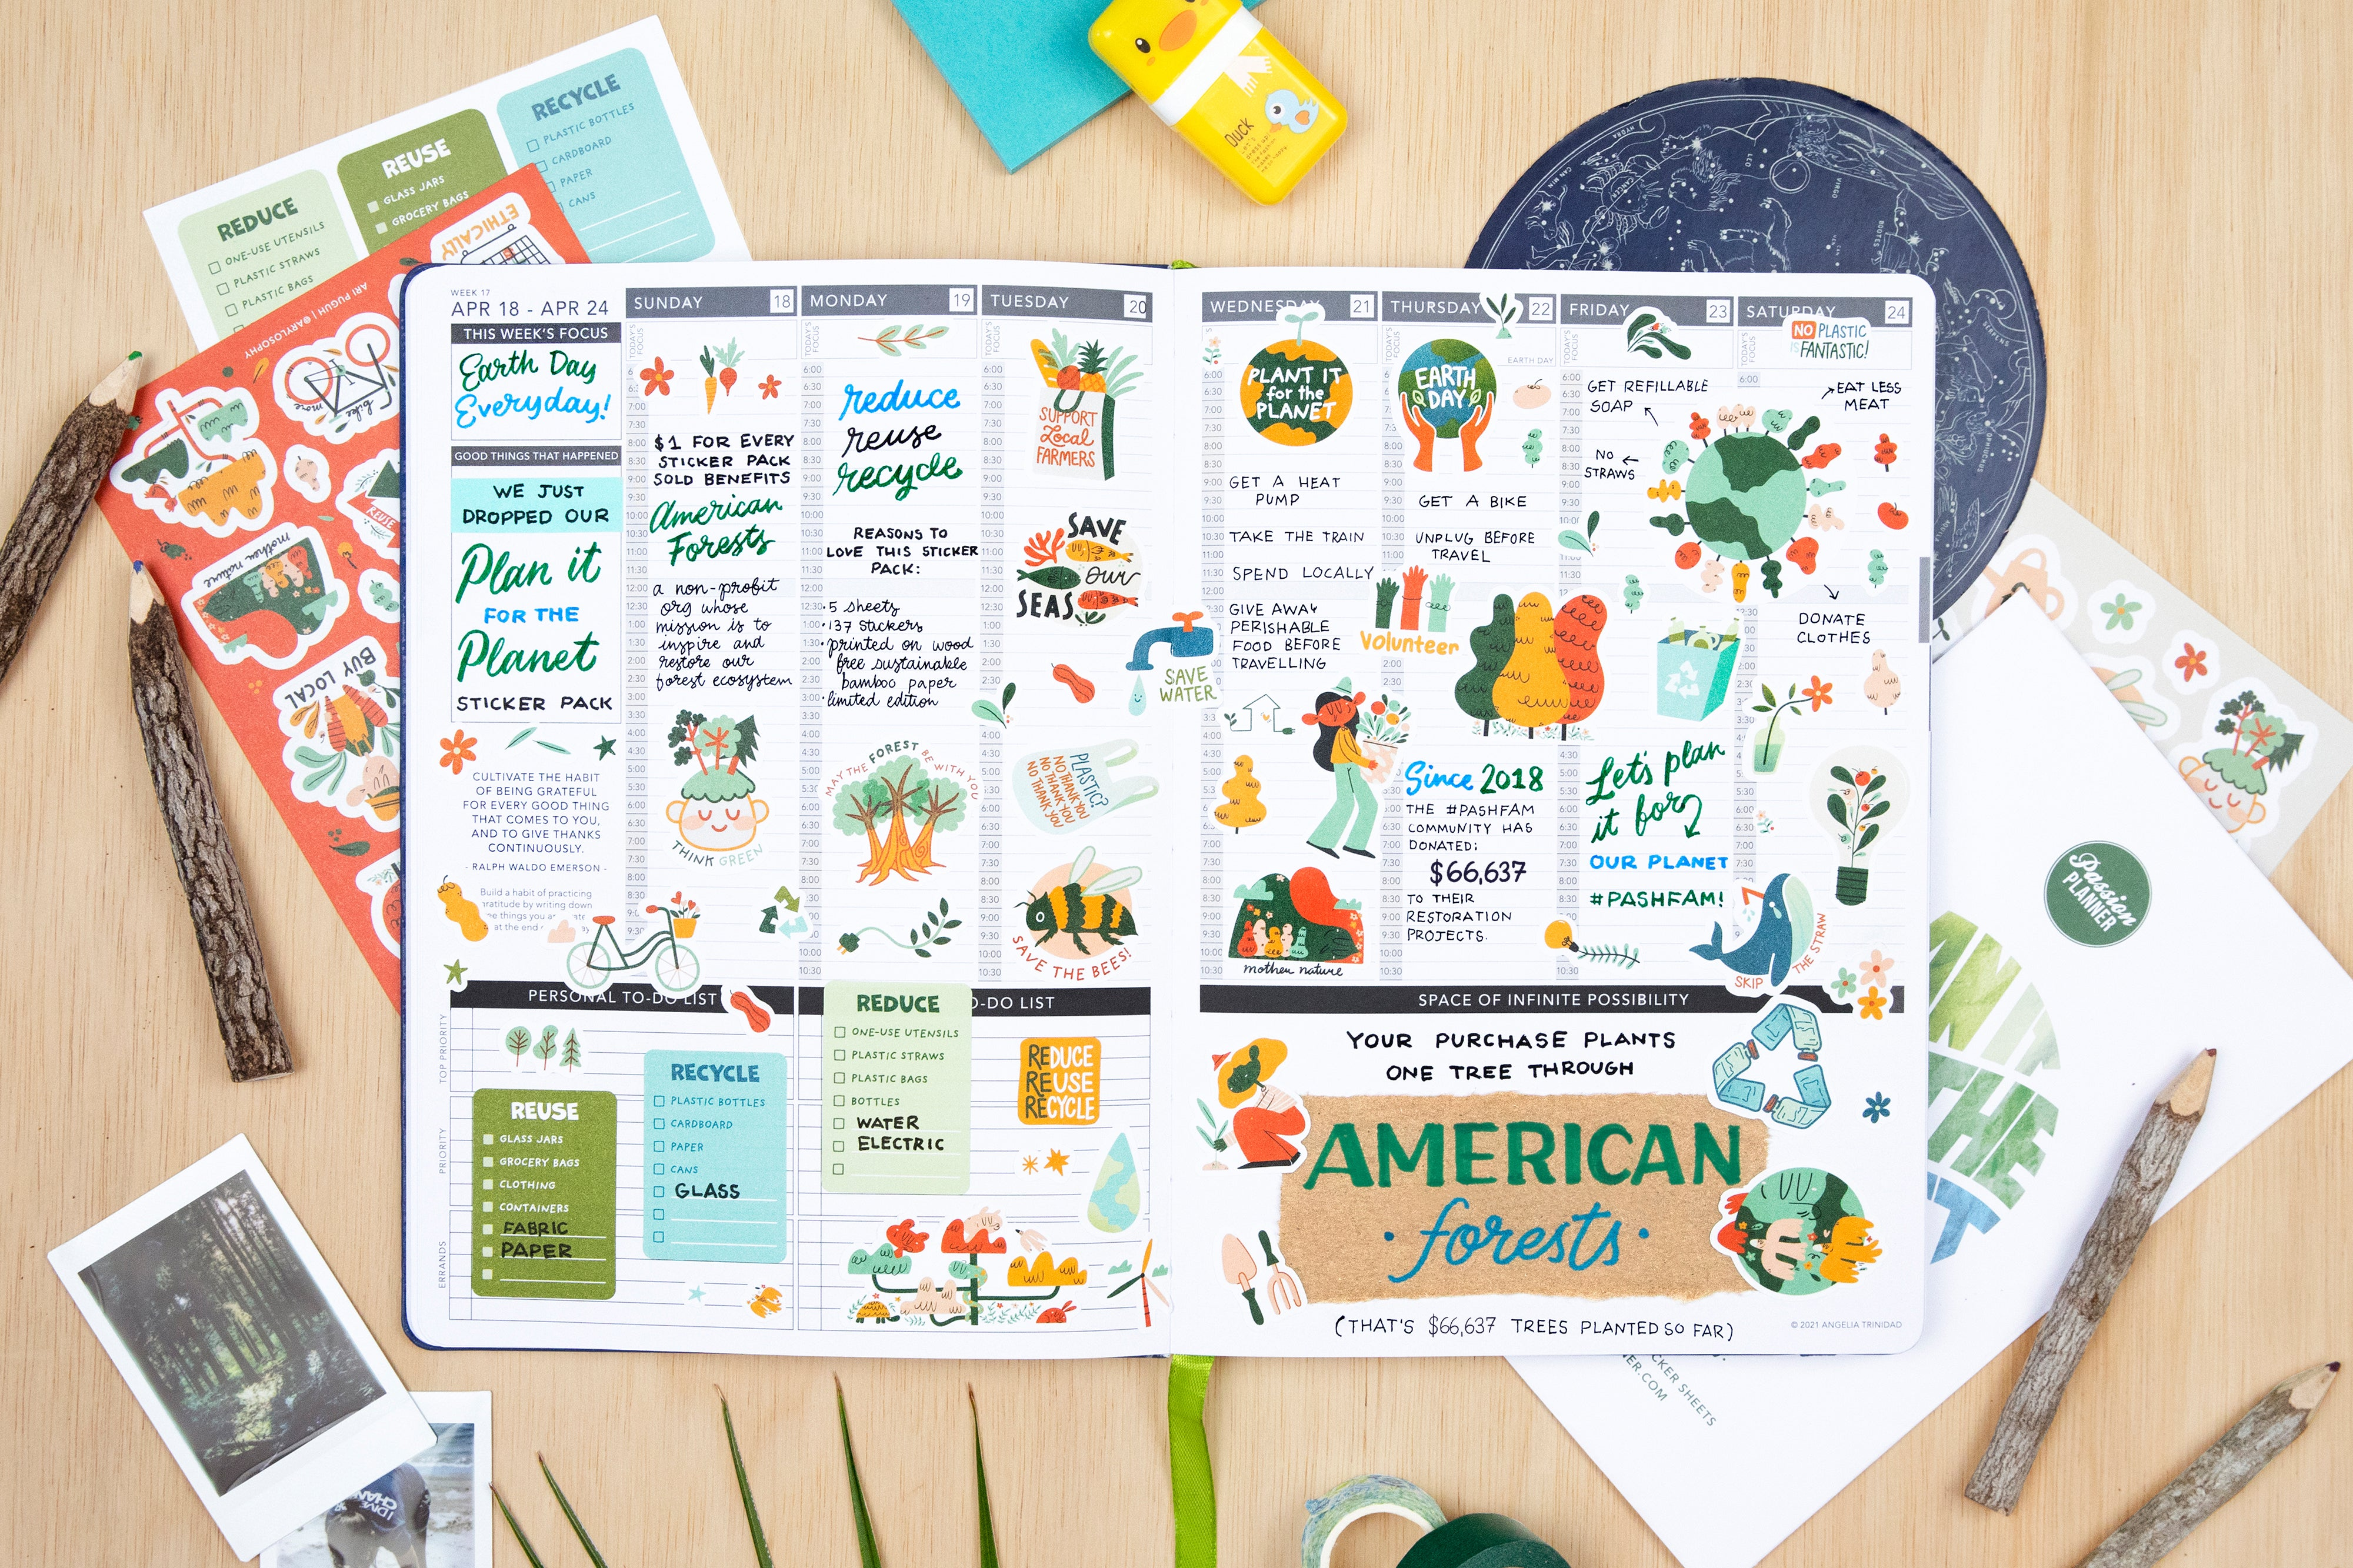 Plan It for the Planet Sticker Pack - Passion Planner